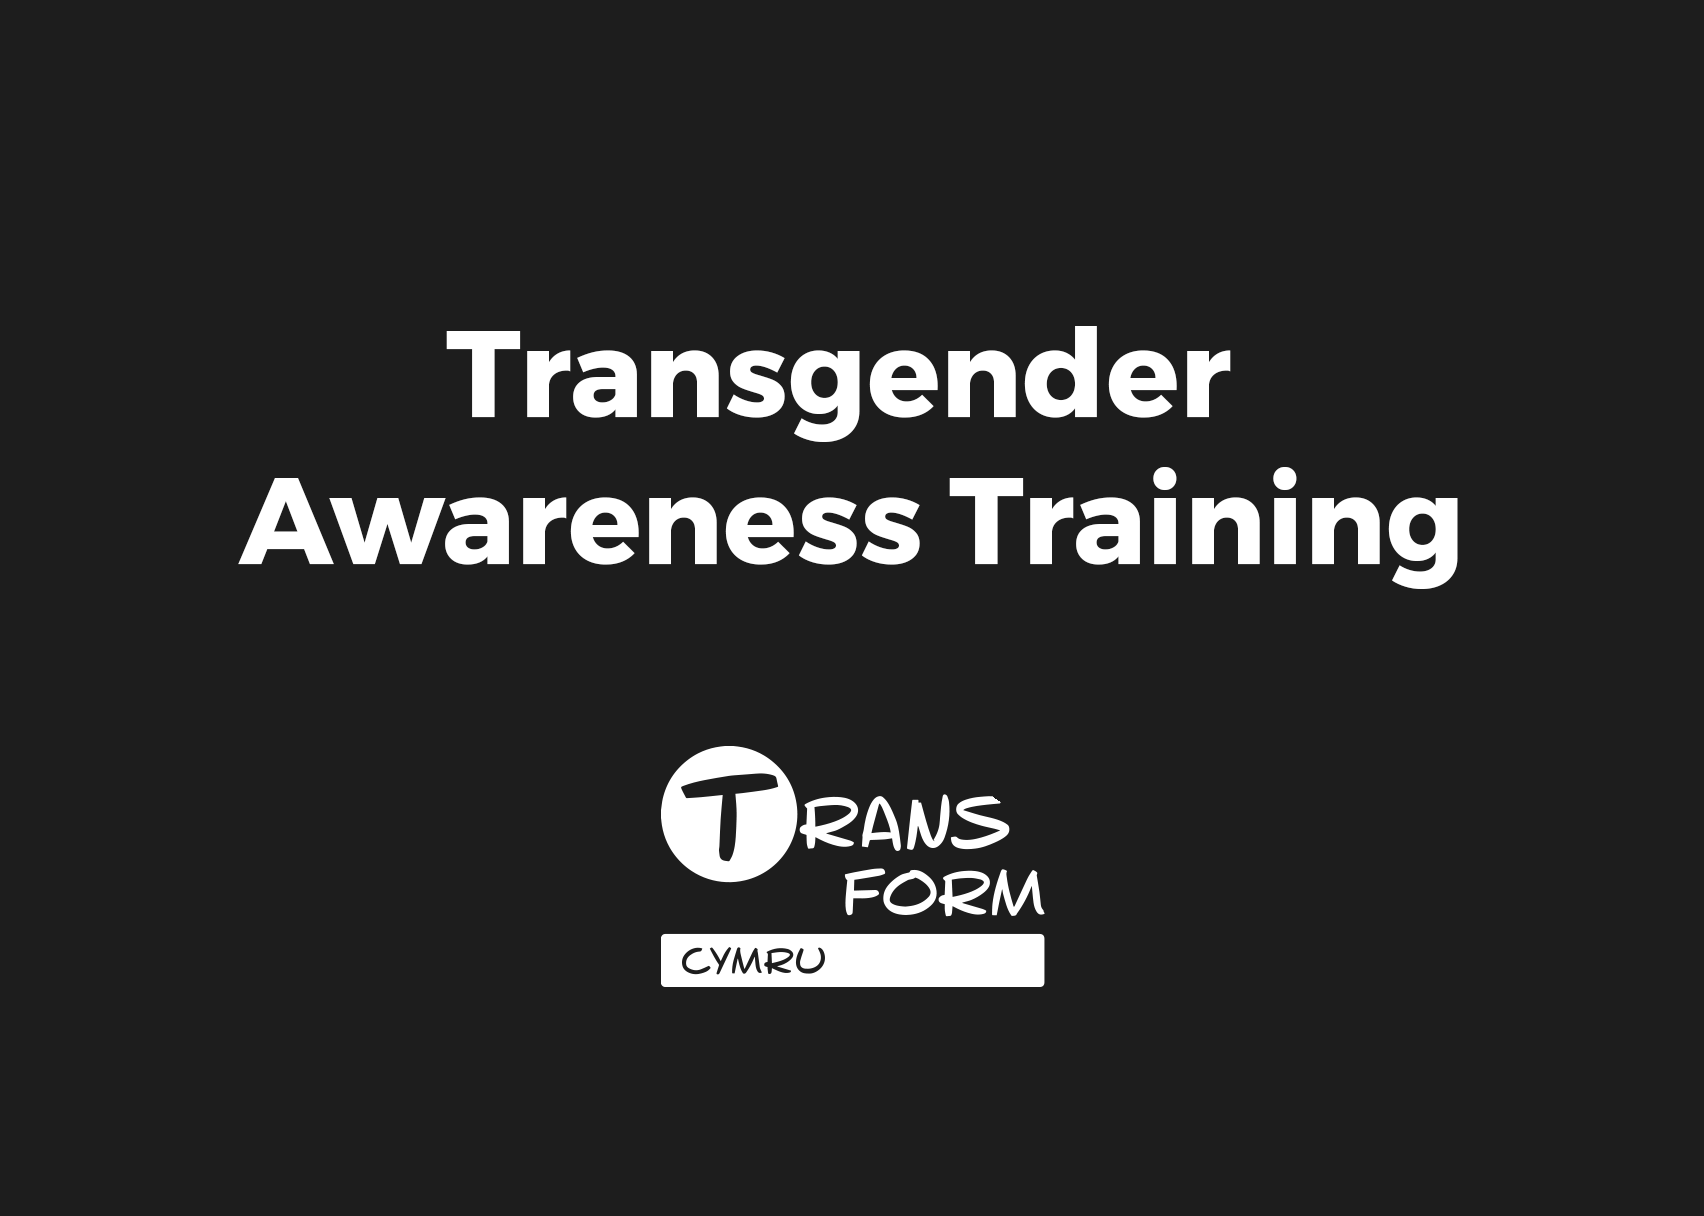 Transgender Awareness Training